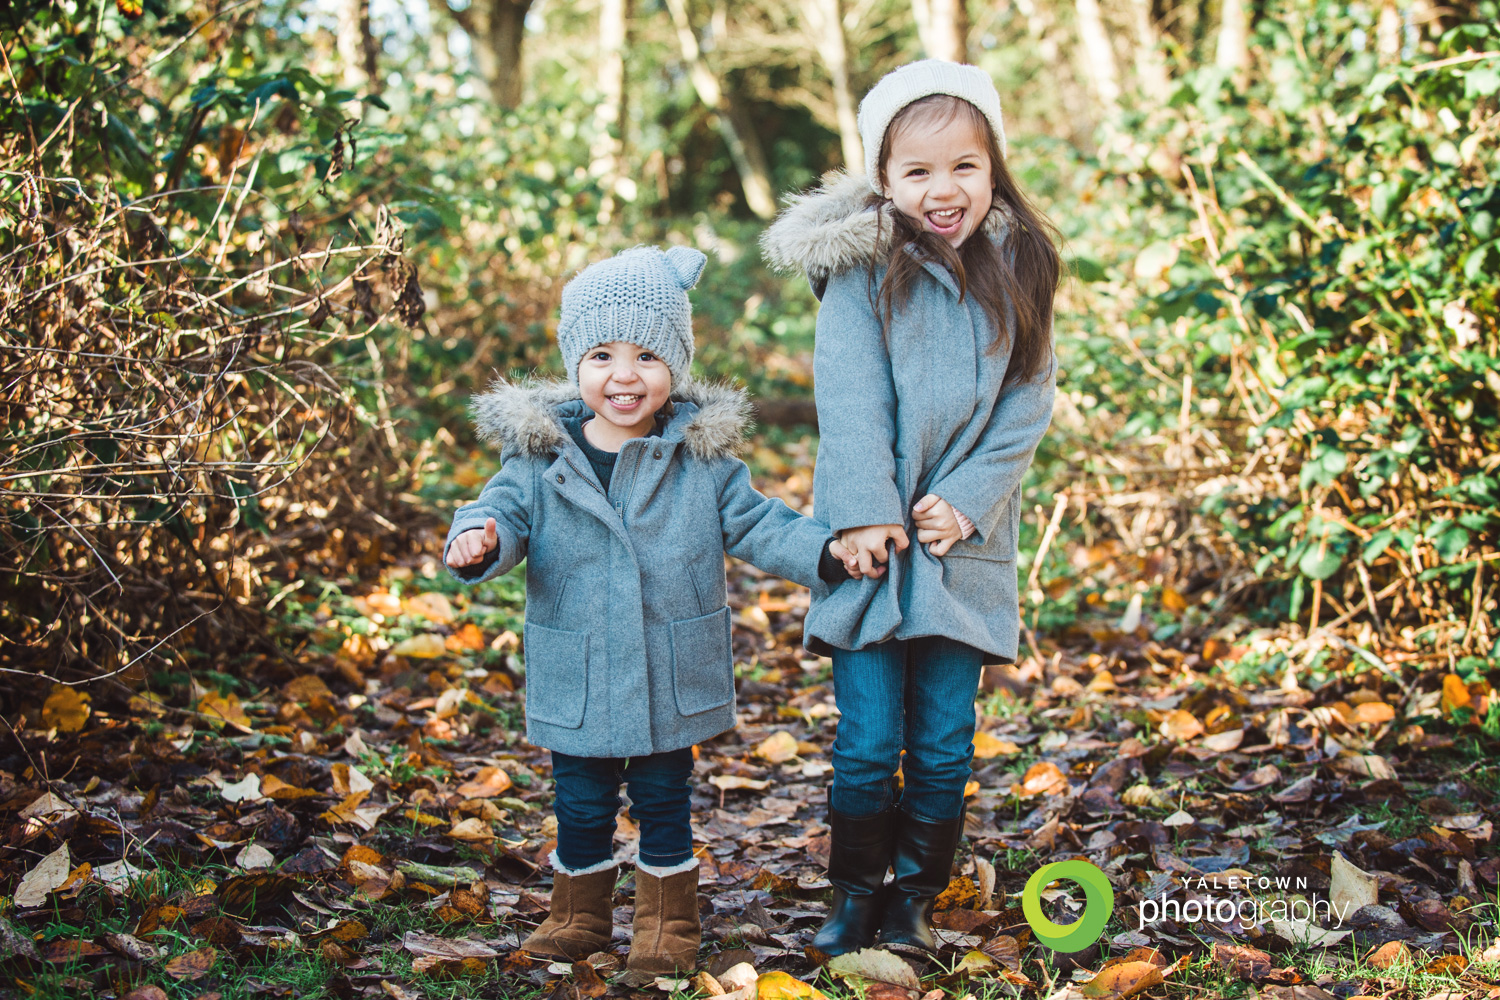 sisters-kids-photography-children-photo-forest-fall-portraits-yaletown-photography-photo